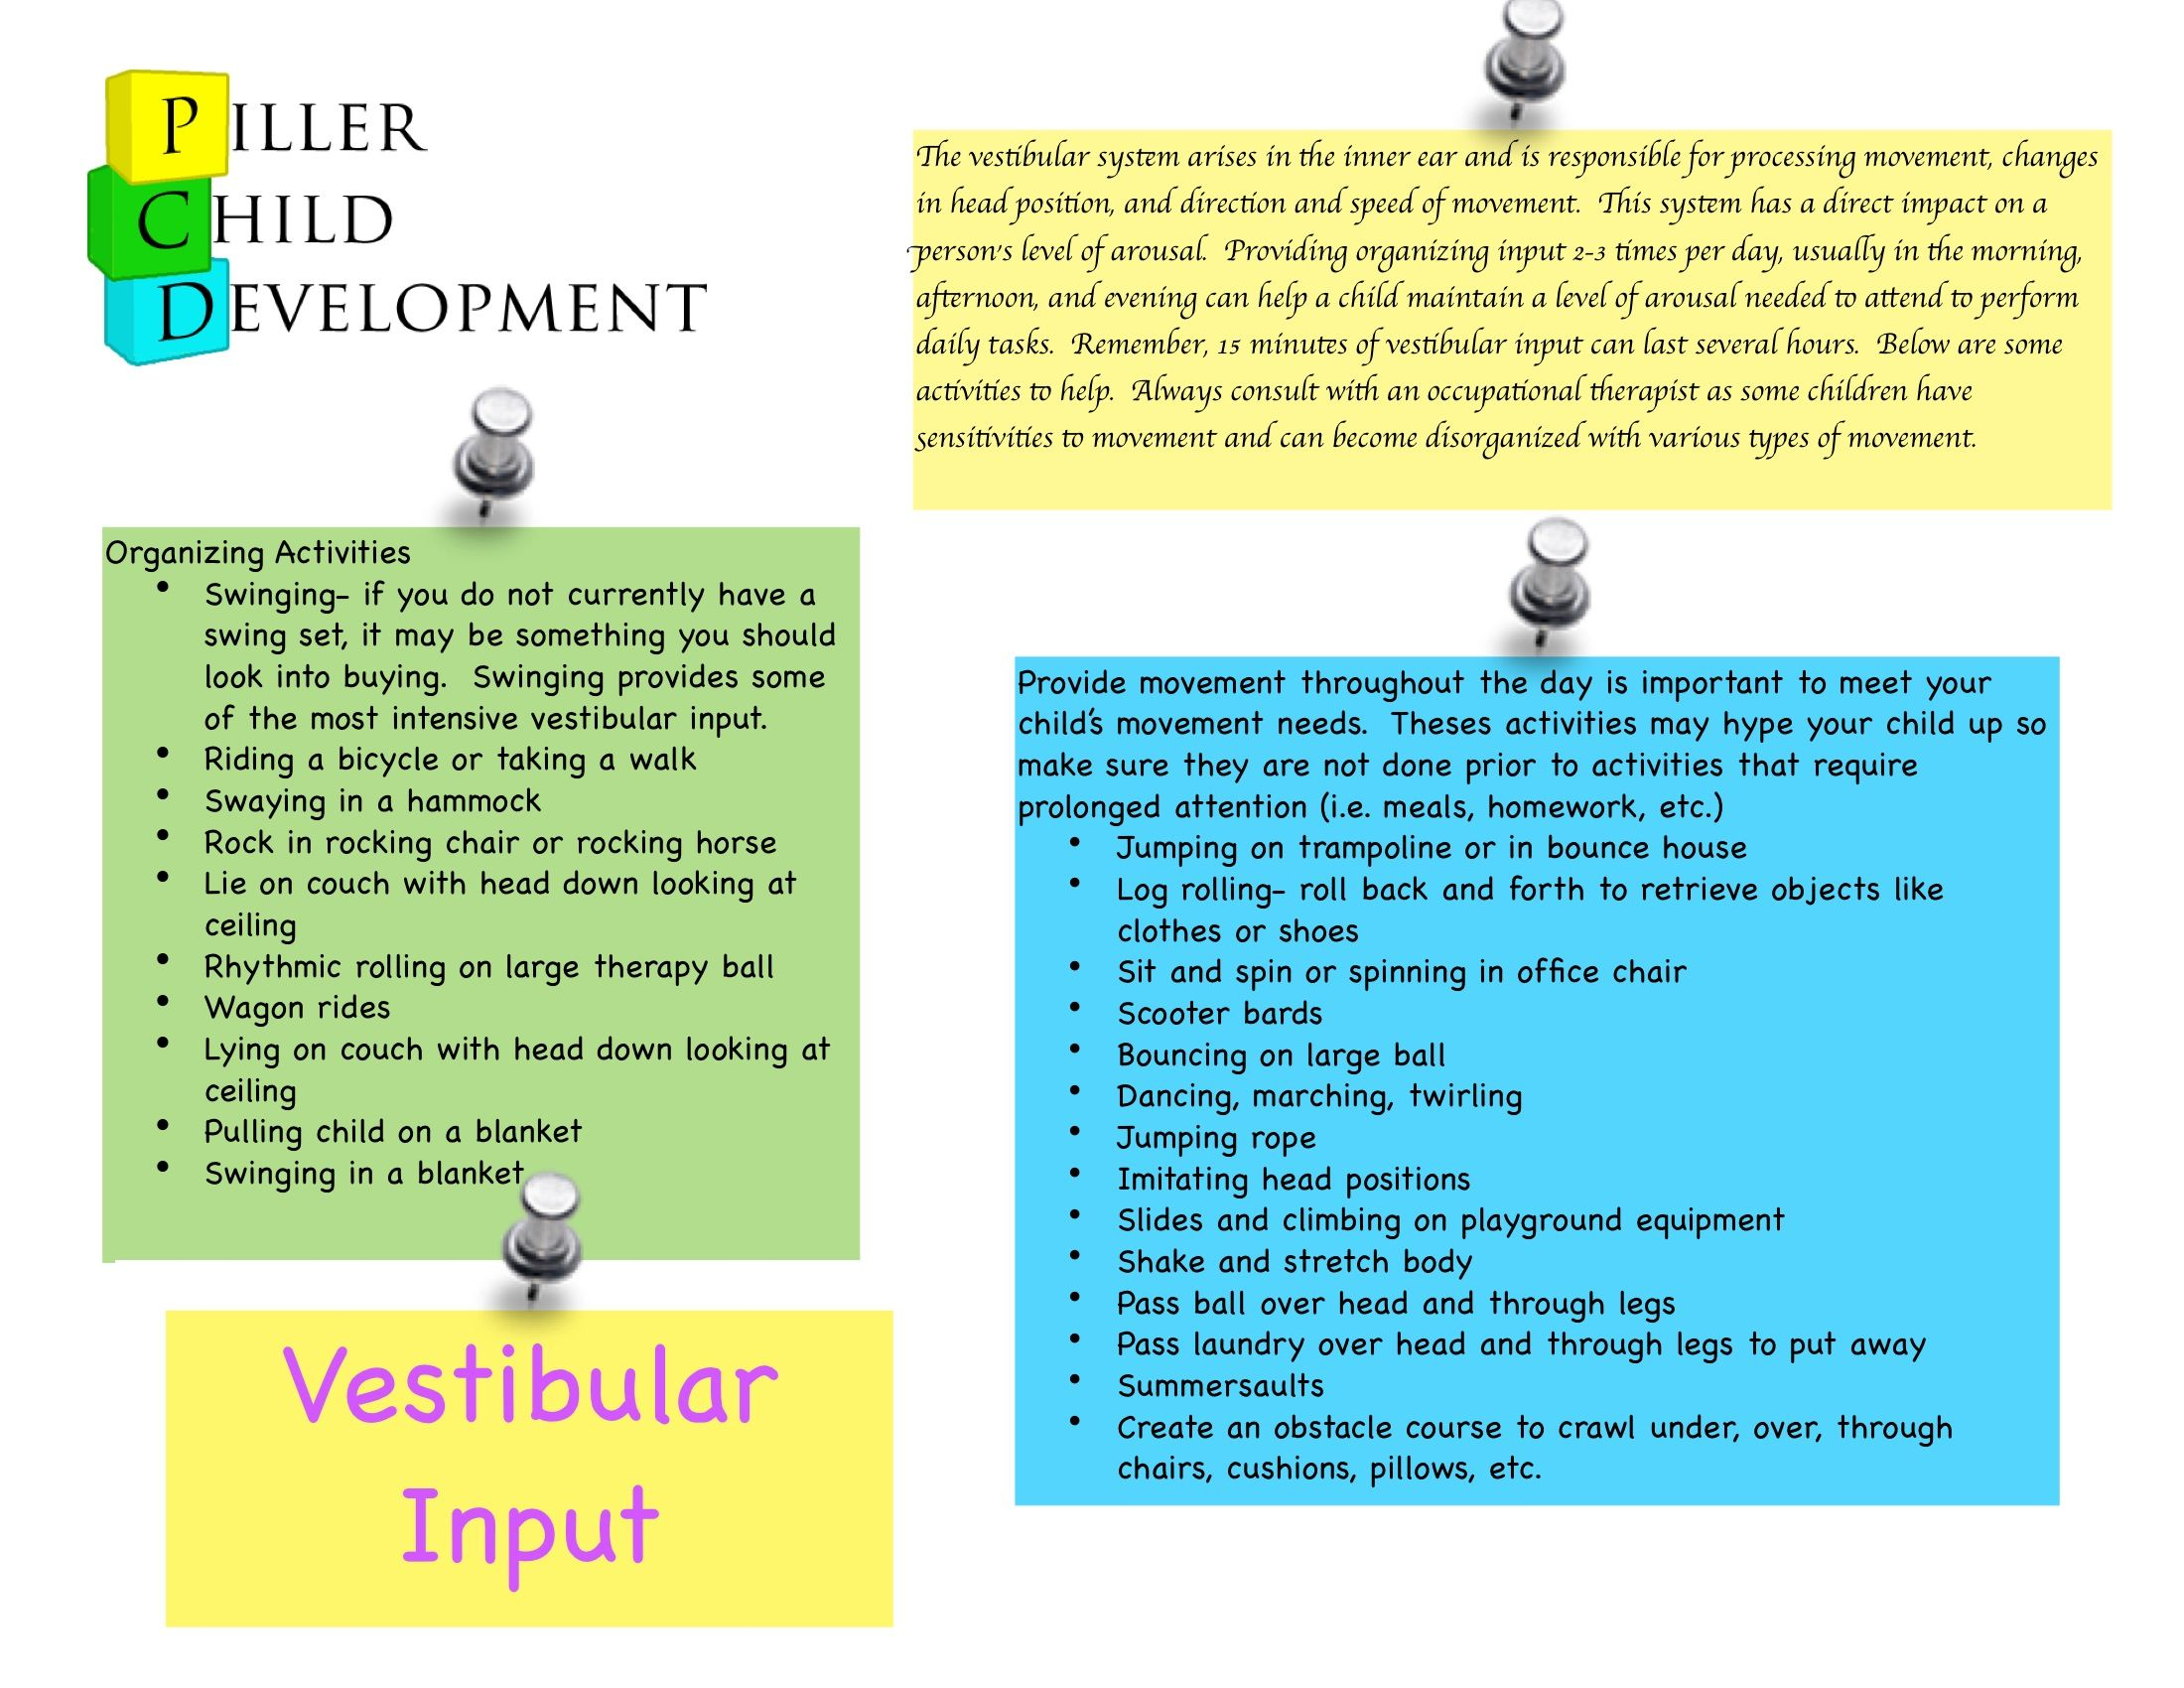 List Of Vestibular Activities For Home Gonna Use These For Home Programs For My Kids